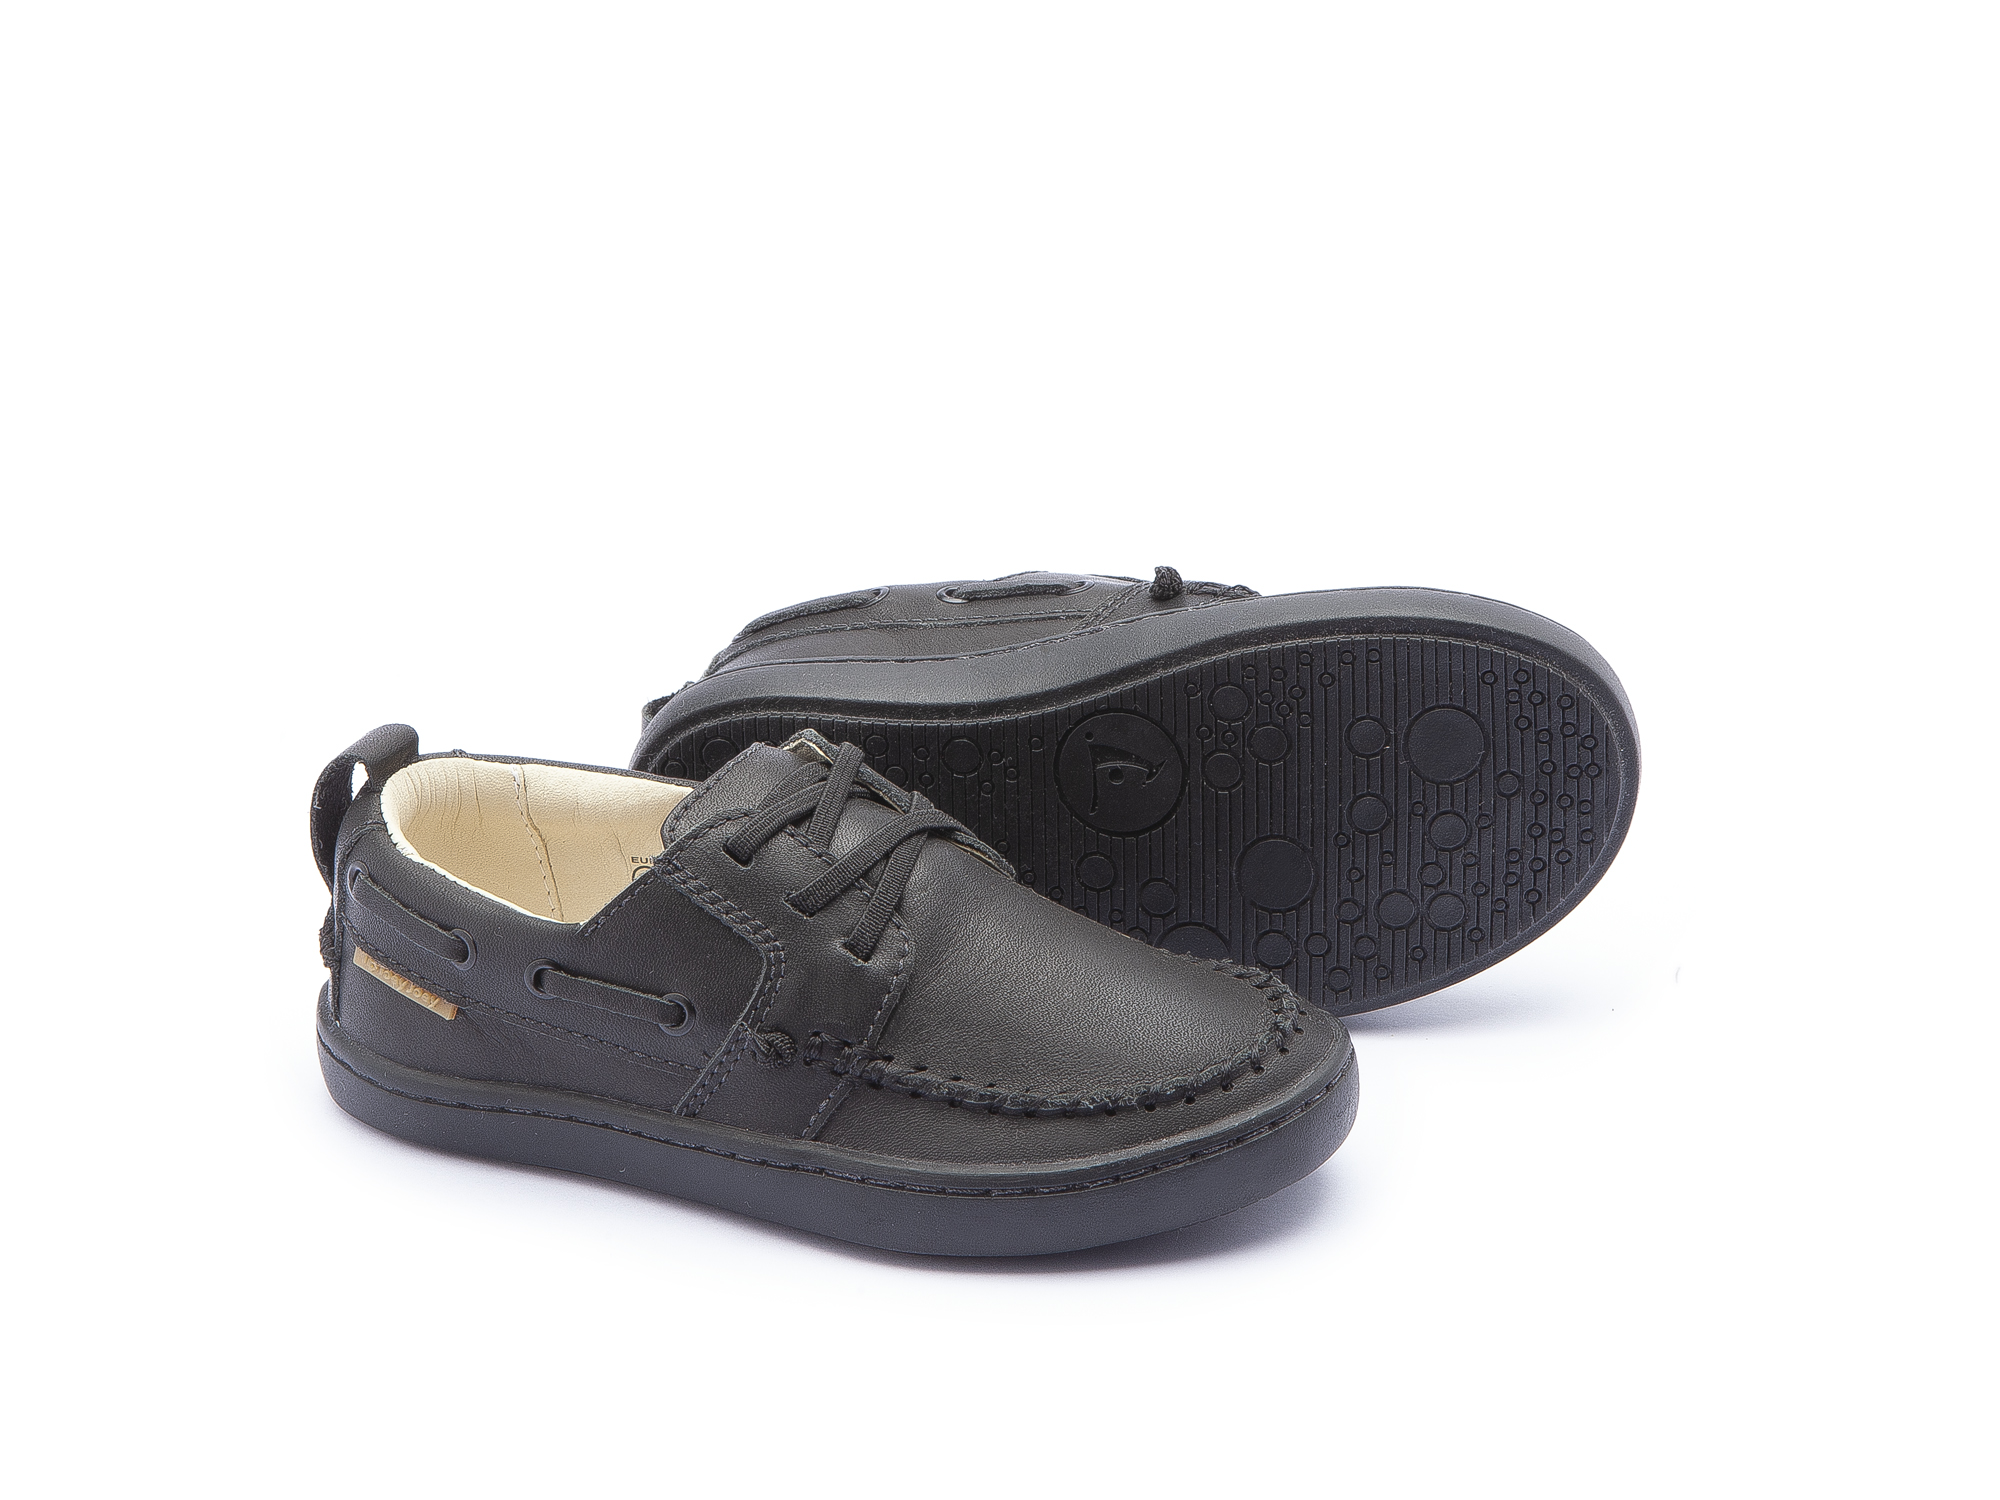 Sneaker Casual Little Snap Black Toddler 2 à 4 anos - 2